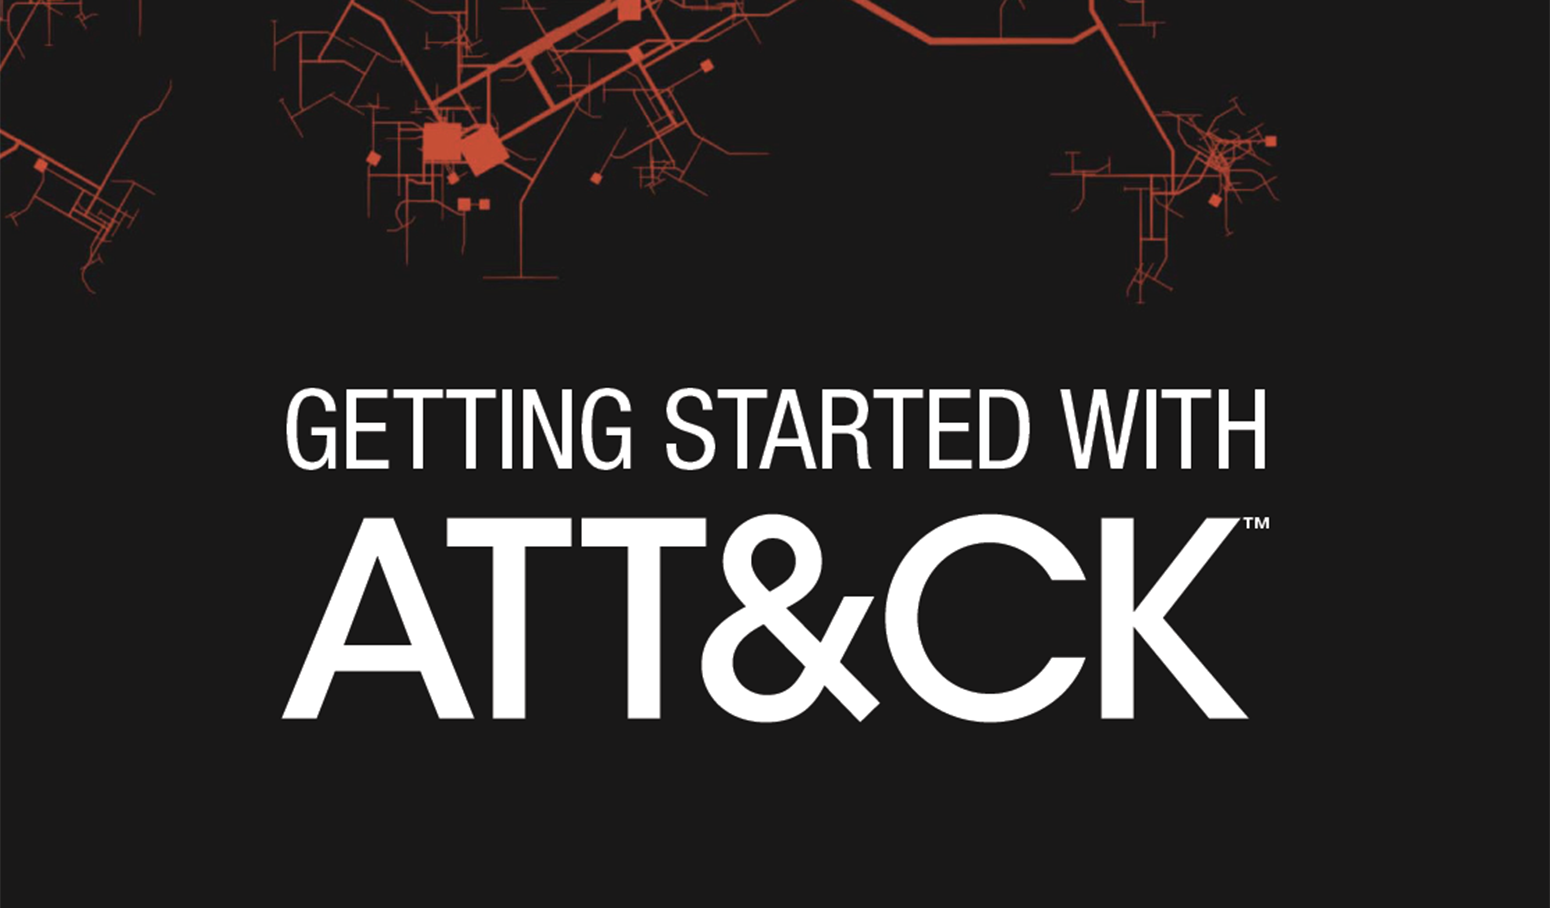 Getting Started with ATT&CK